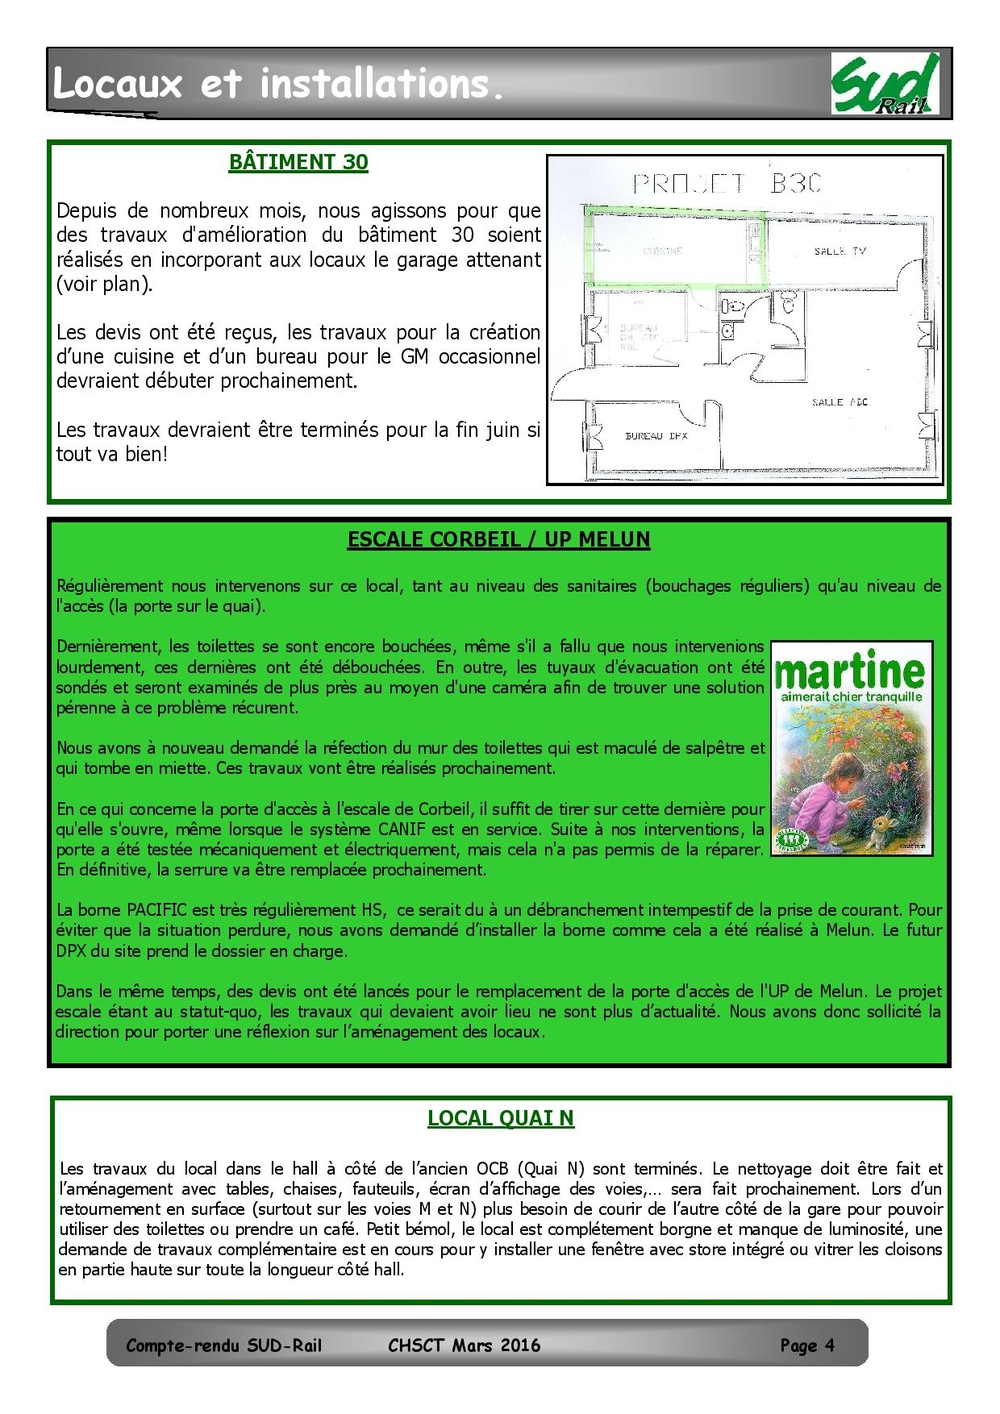 etpse crchsct 03-2016-page-004